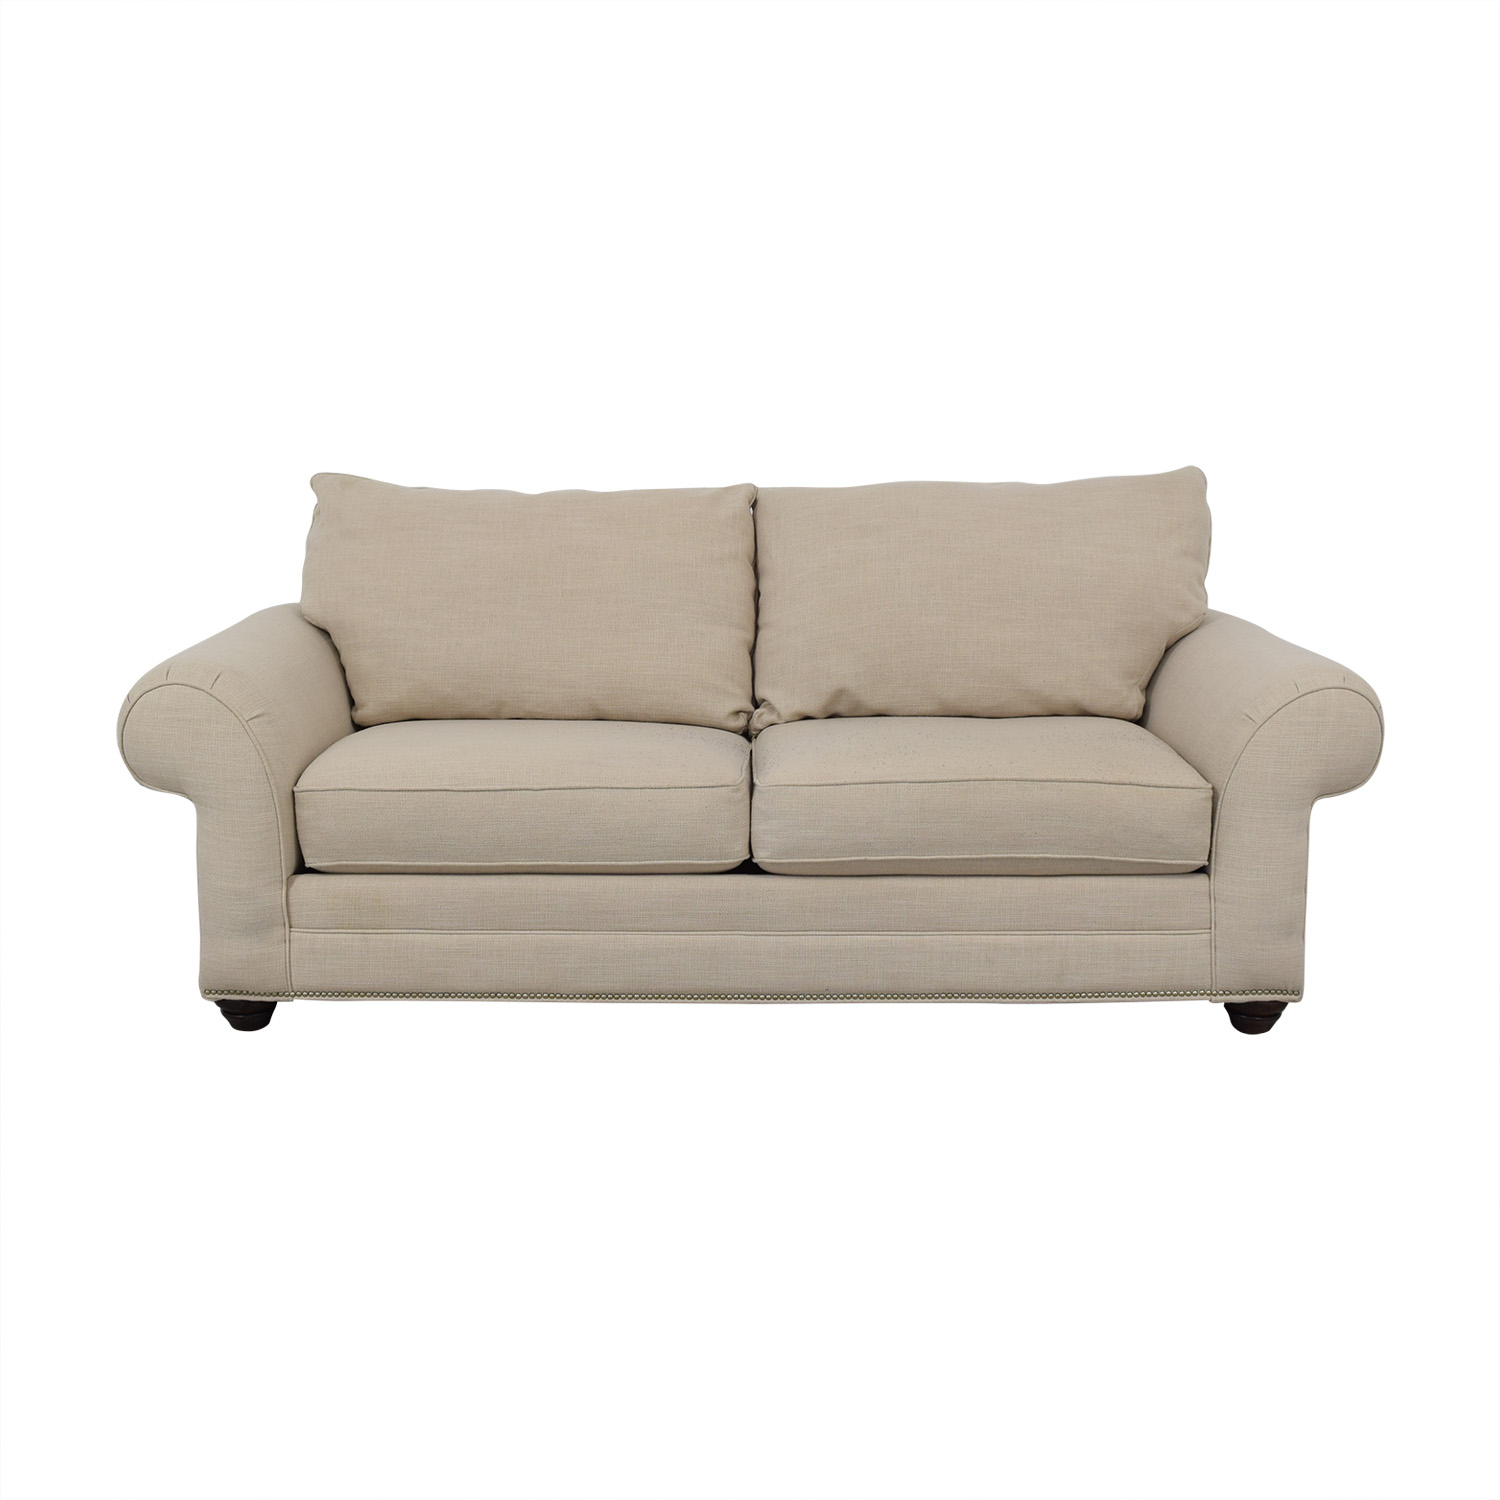 Bassett Furniture Bassett Furniture HGTV Custom Sofa price